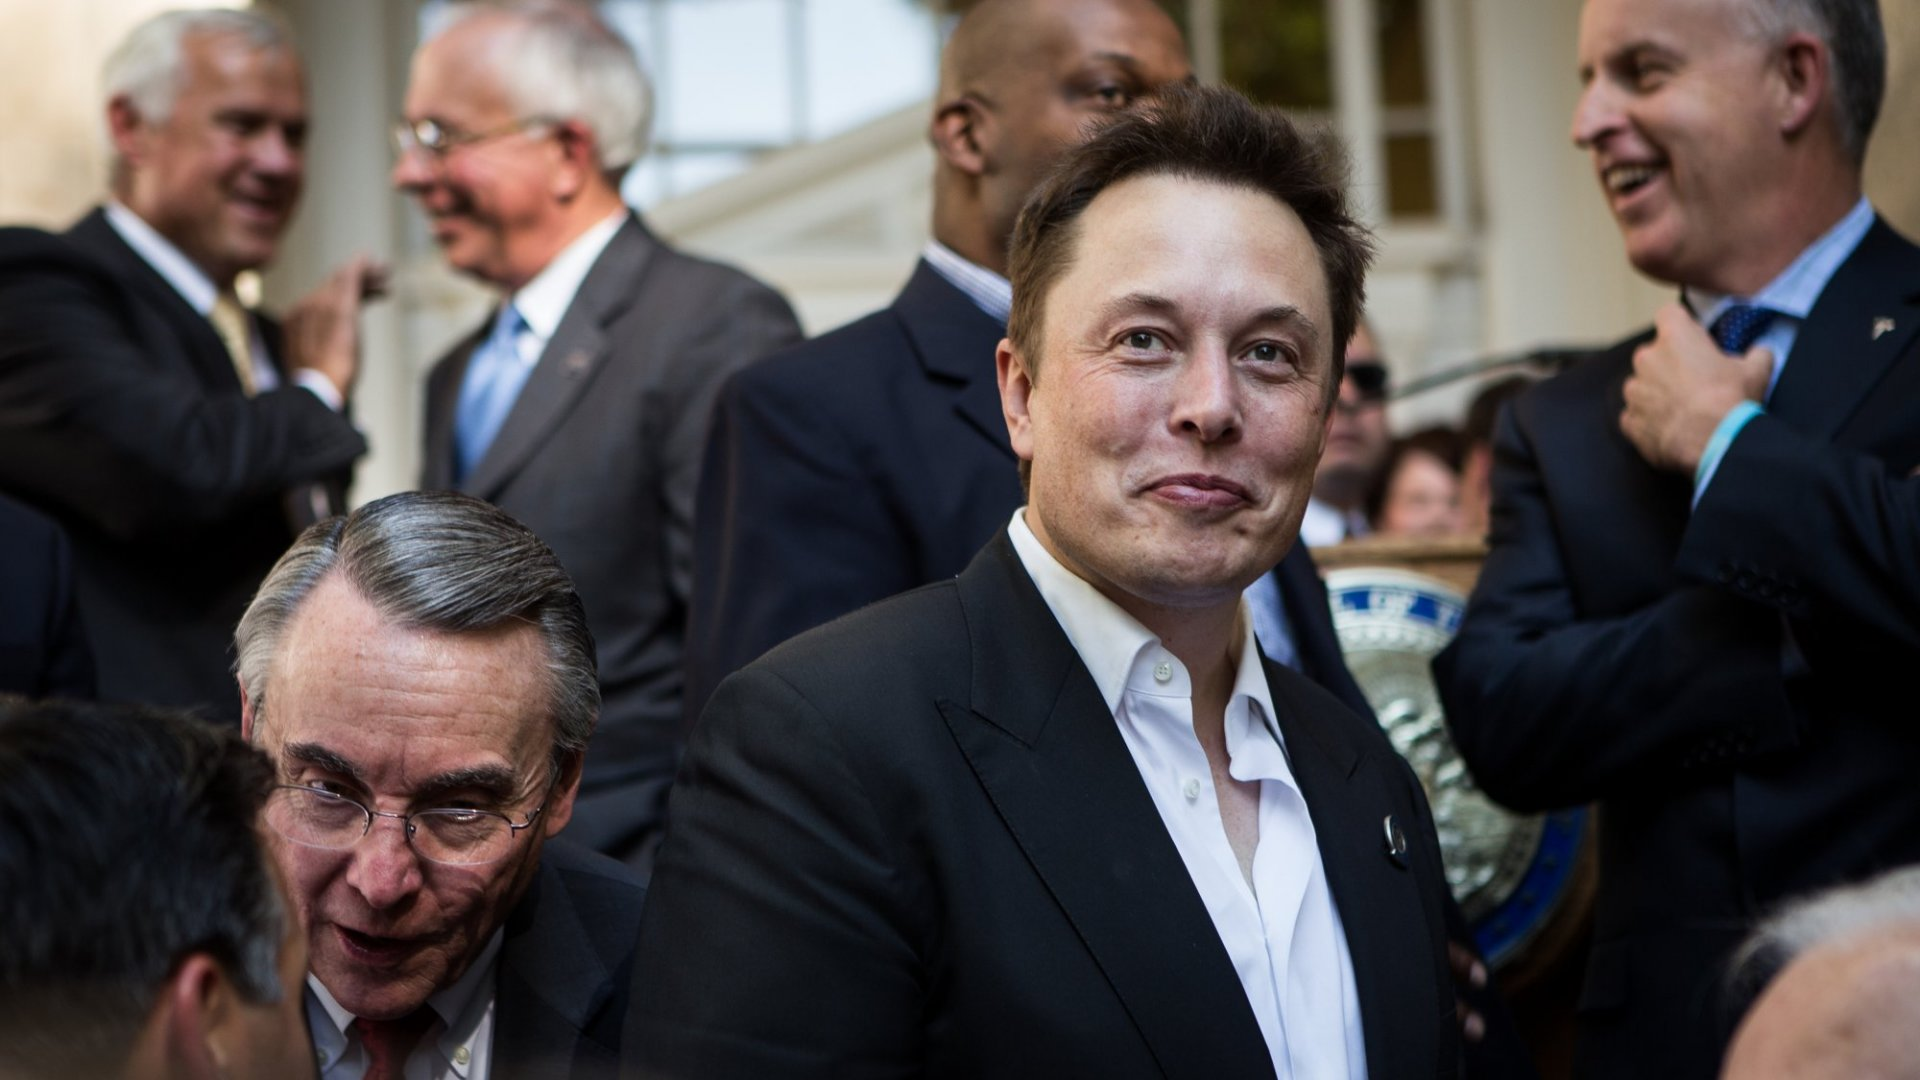 According to the SpaceXCo-Founder, This Is Why Elon Musk Is Wildly Successful